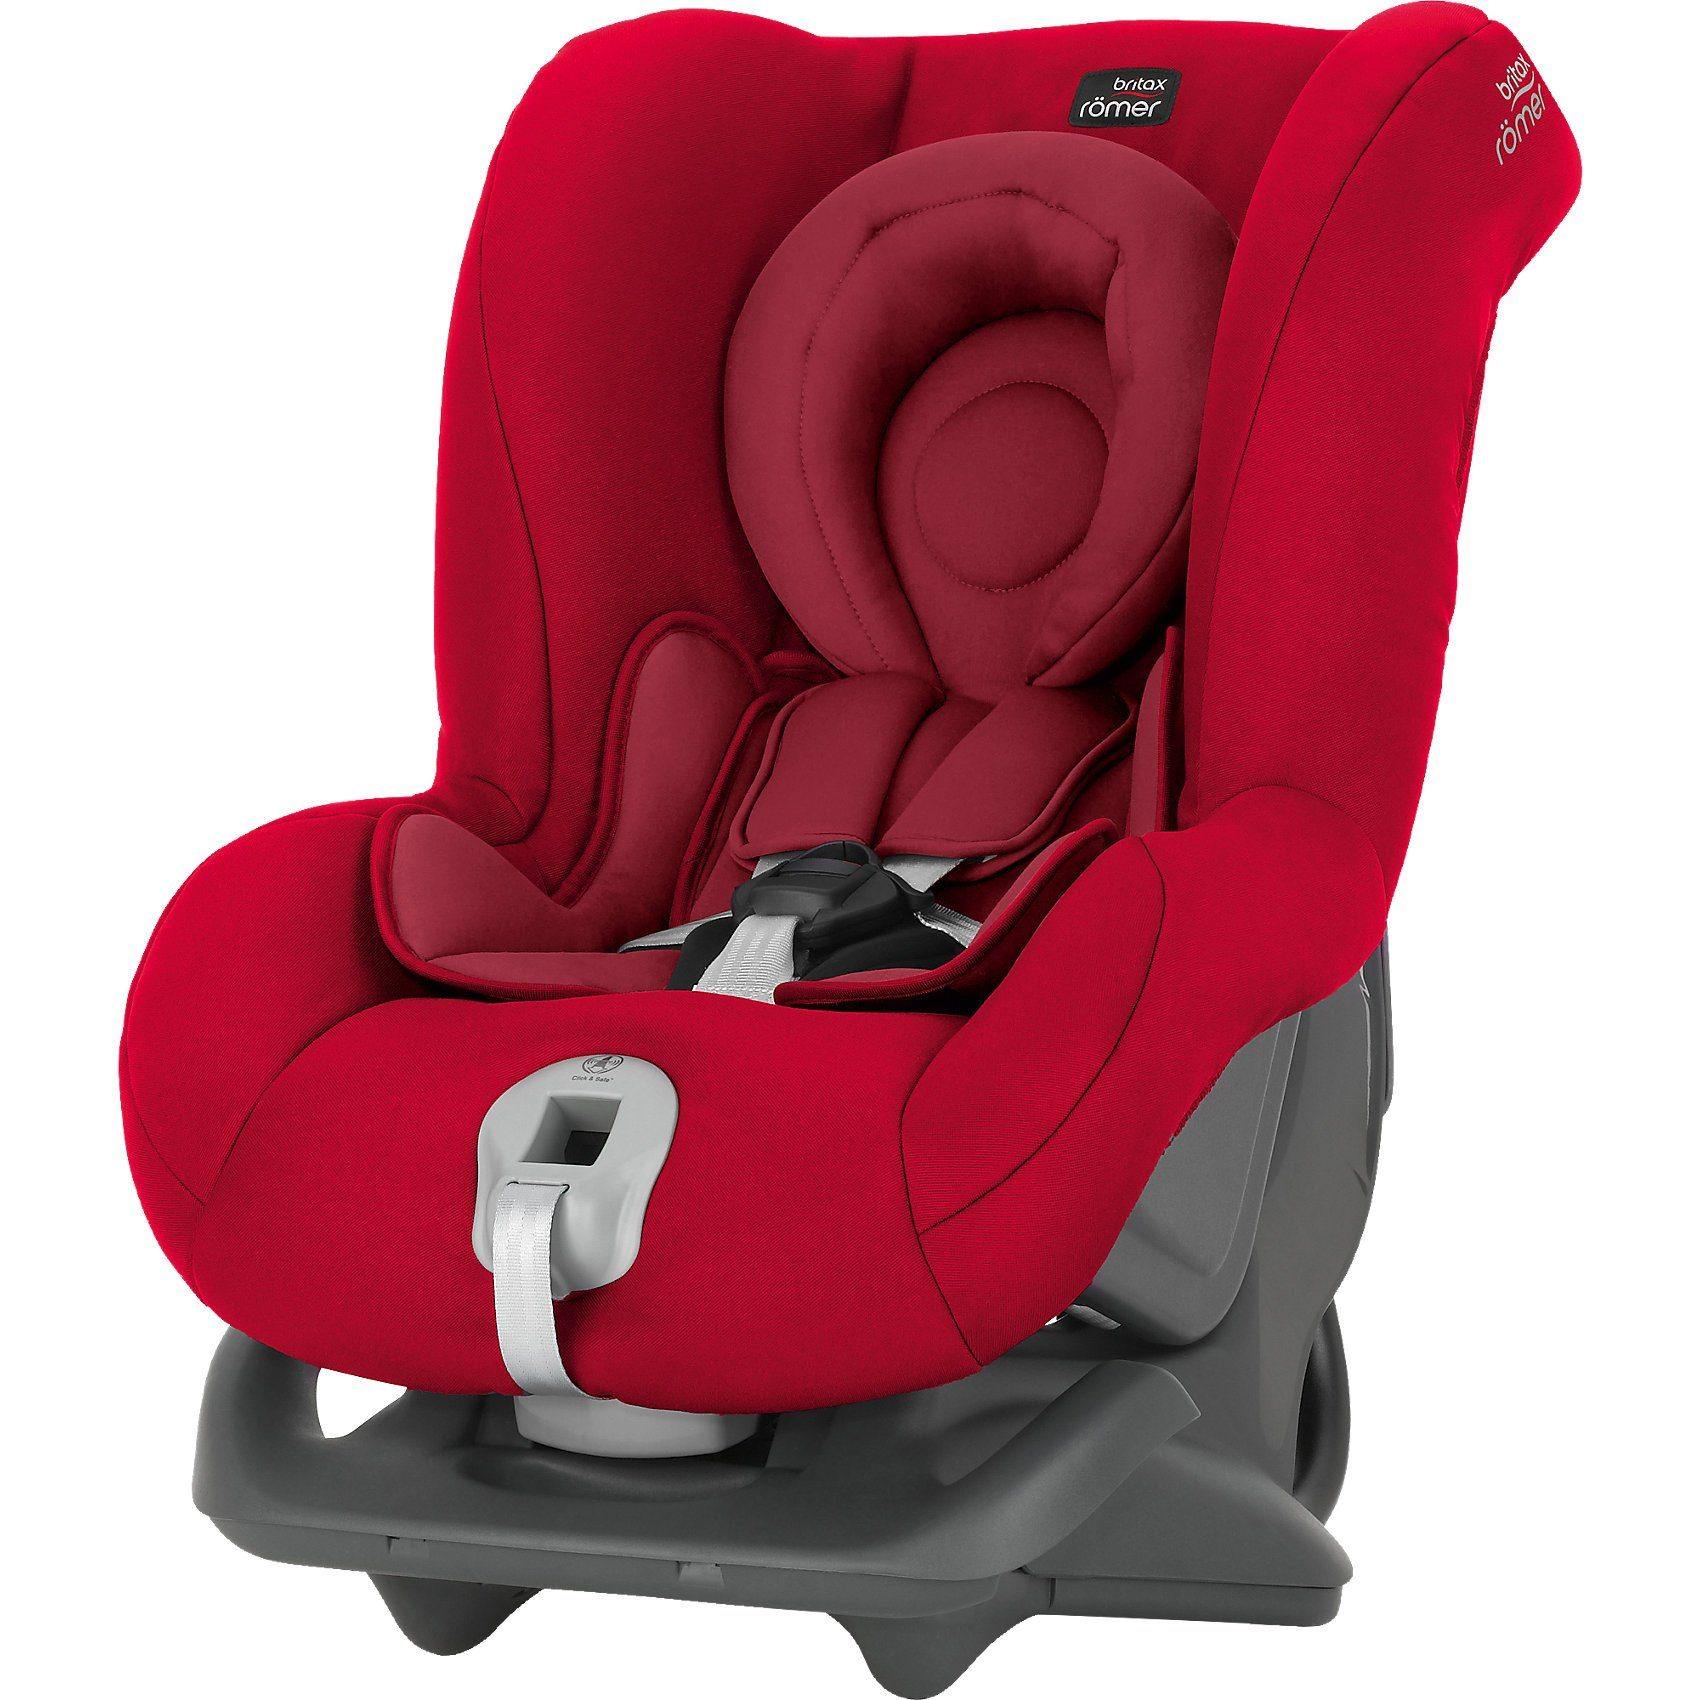 Britax Römer Auto-Kindersitz First Class Plus, Flame Red, 2016